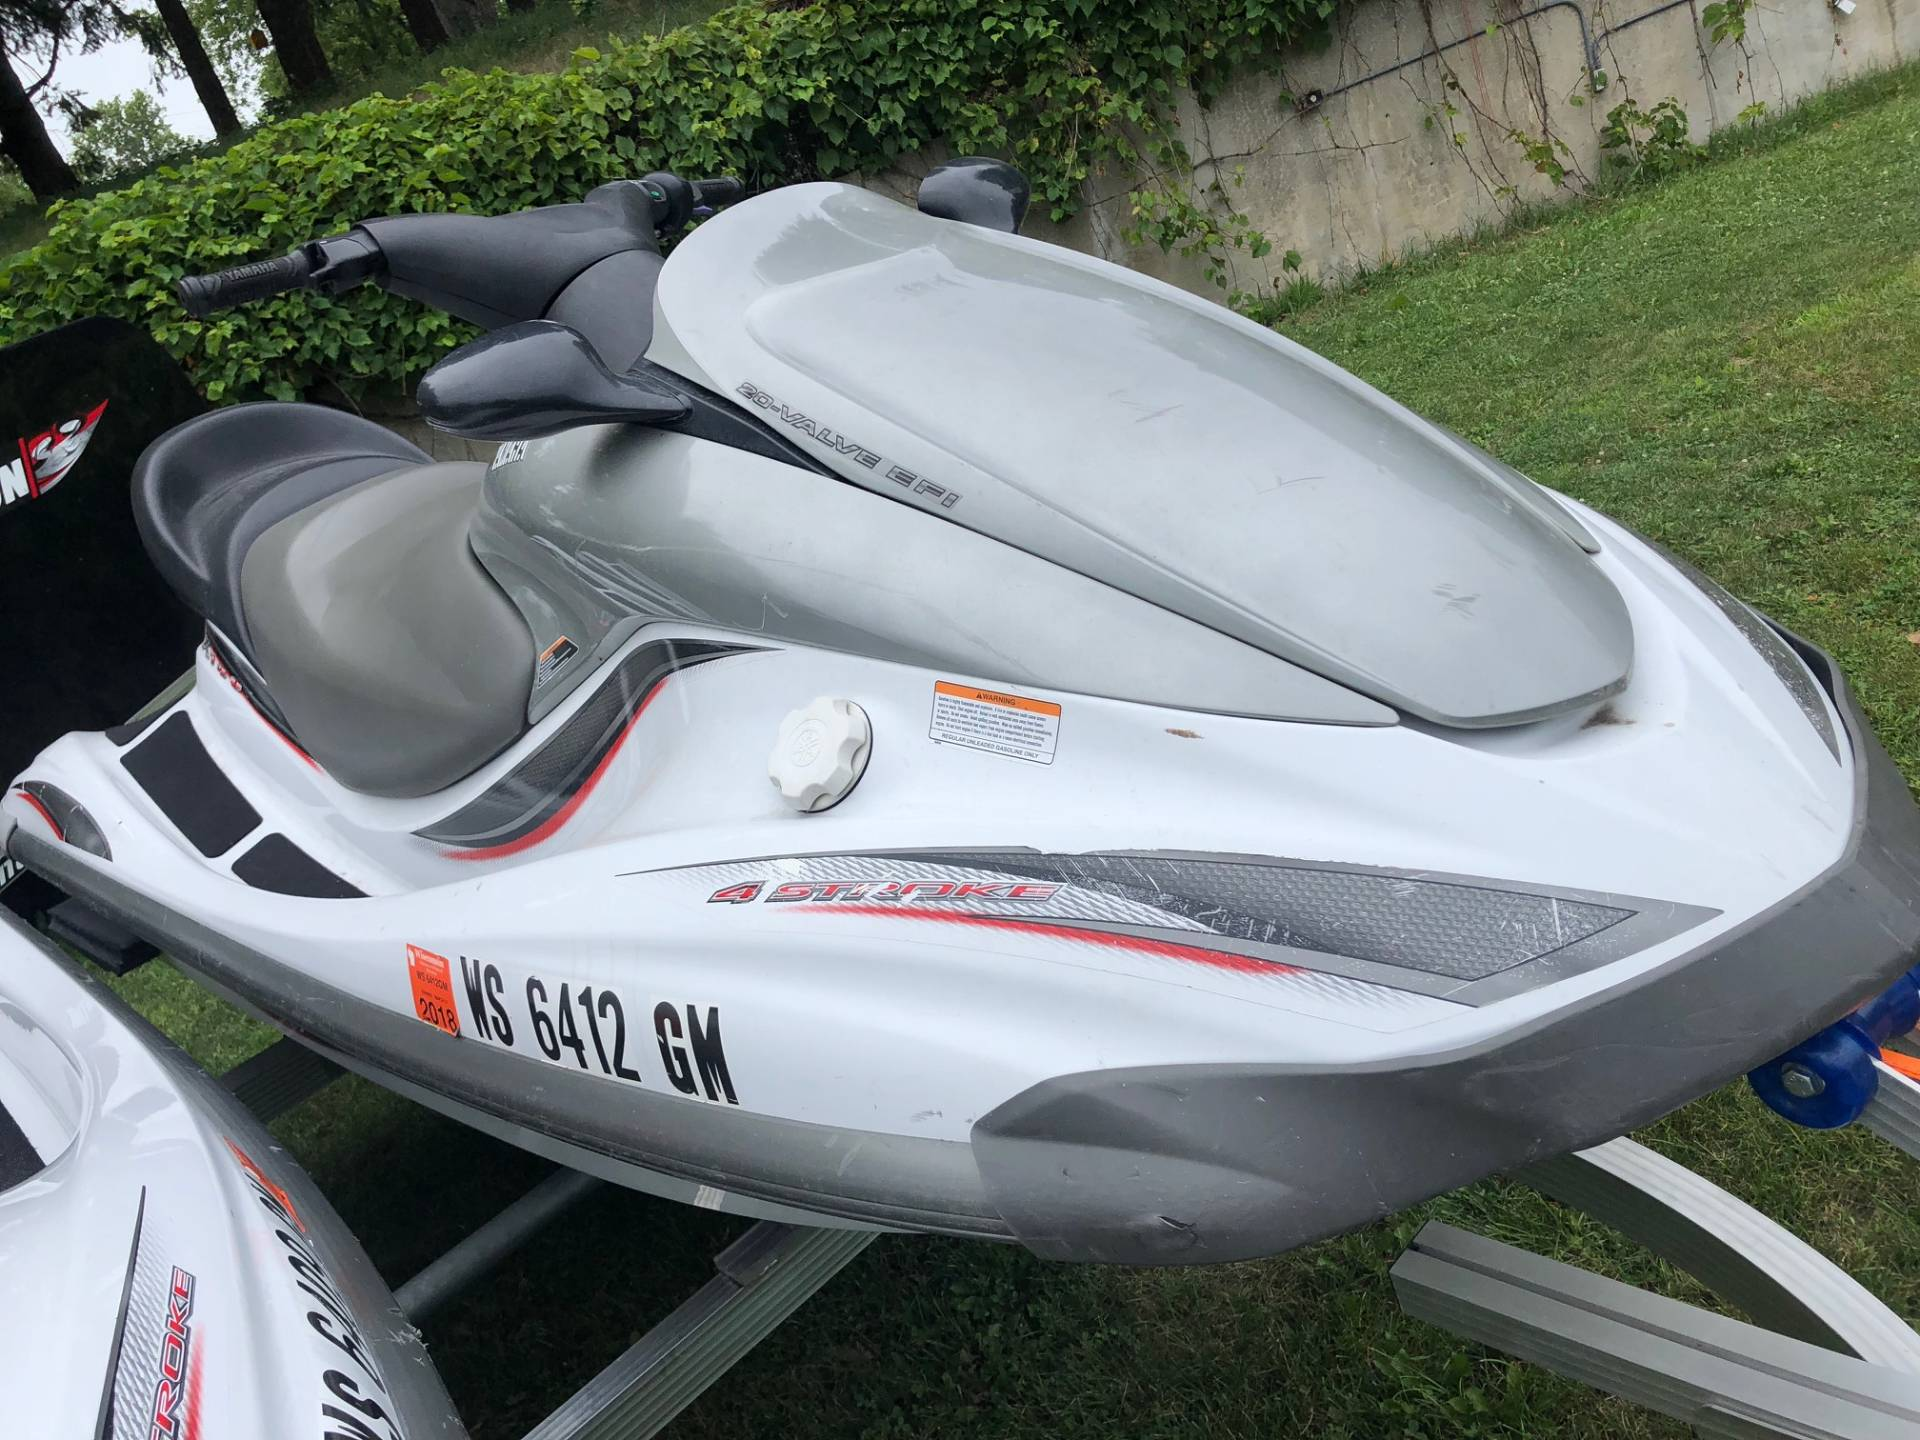 2002 Yamaha WaveRunner FX140 in Port Washington, Wisconsin - Photo 2